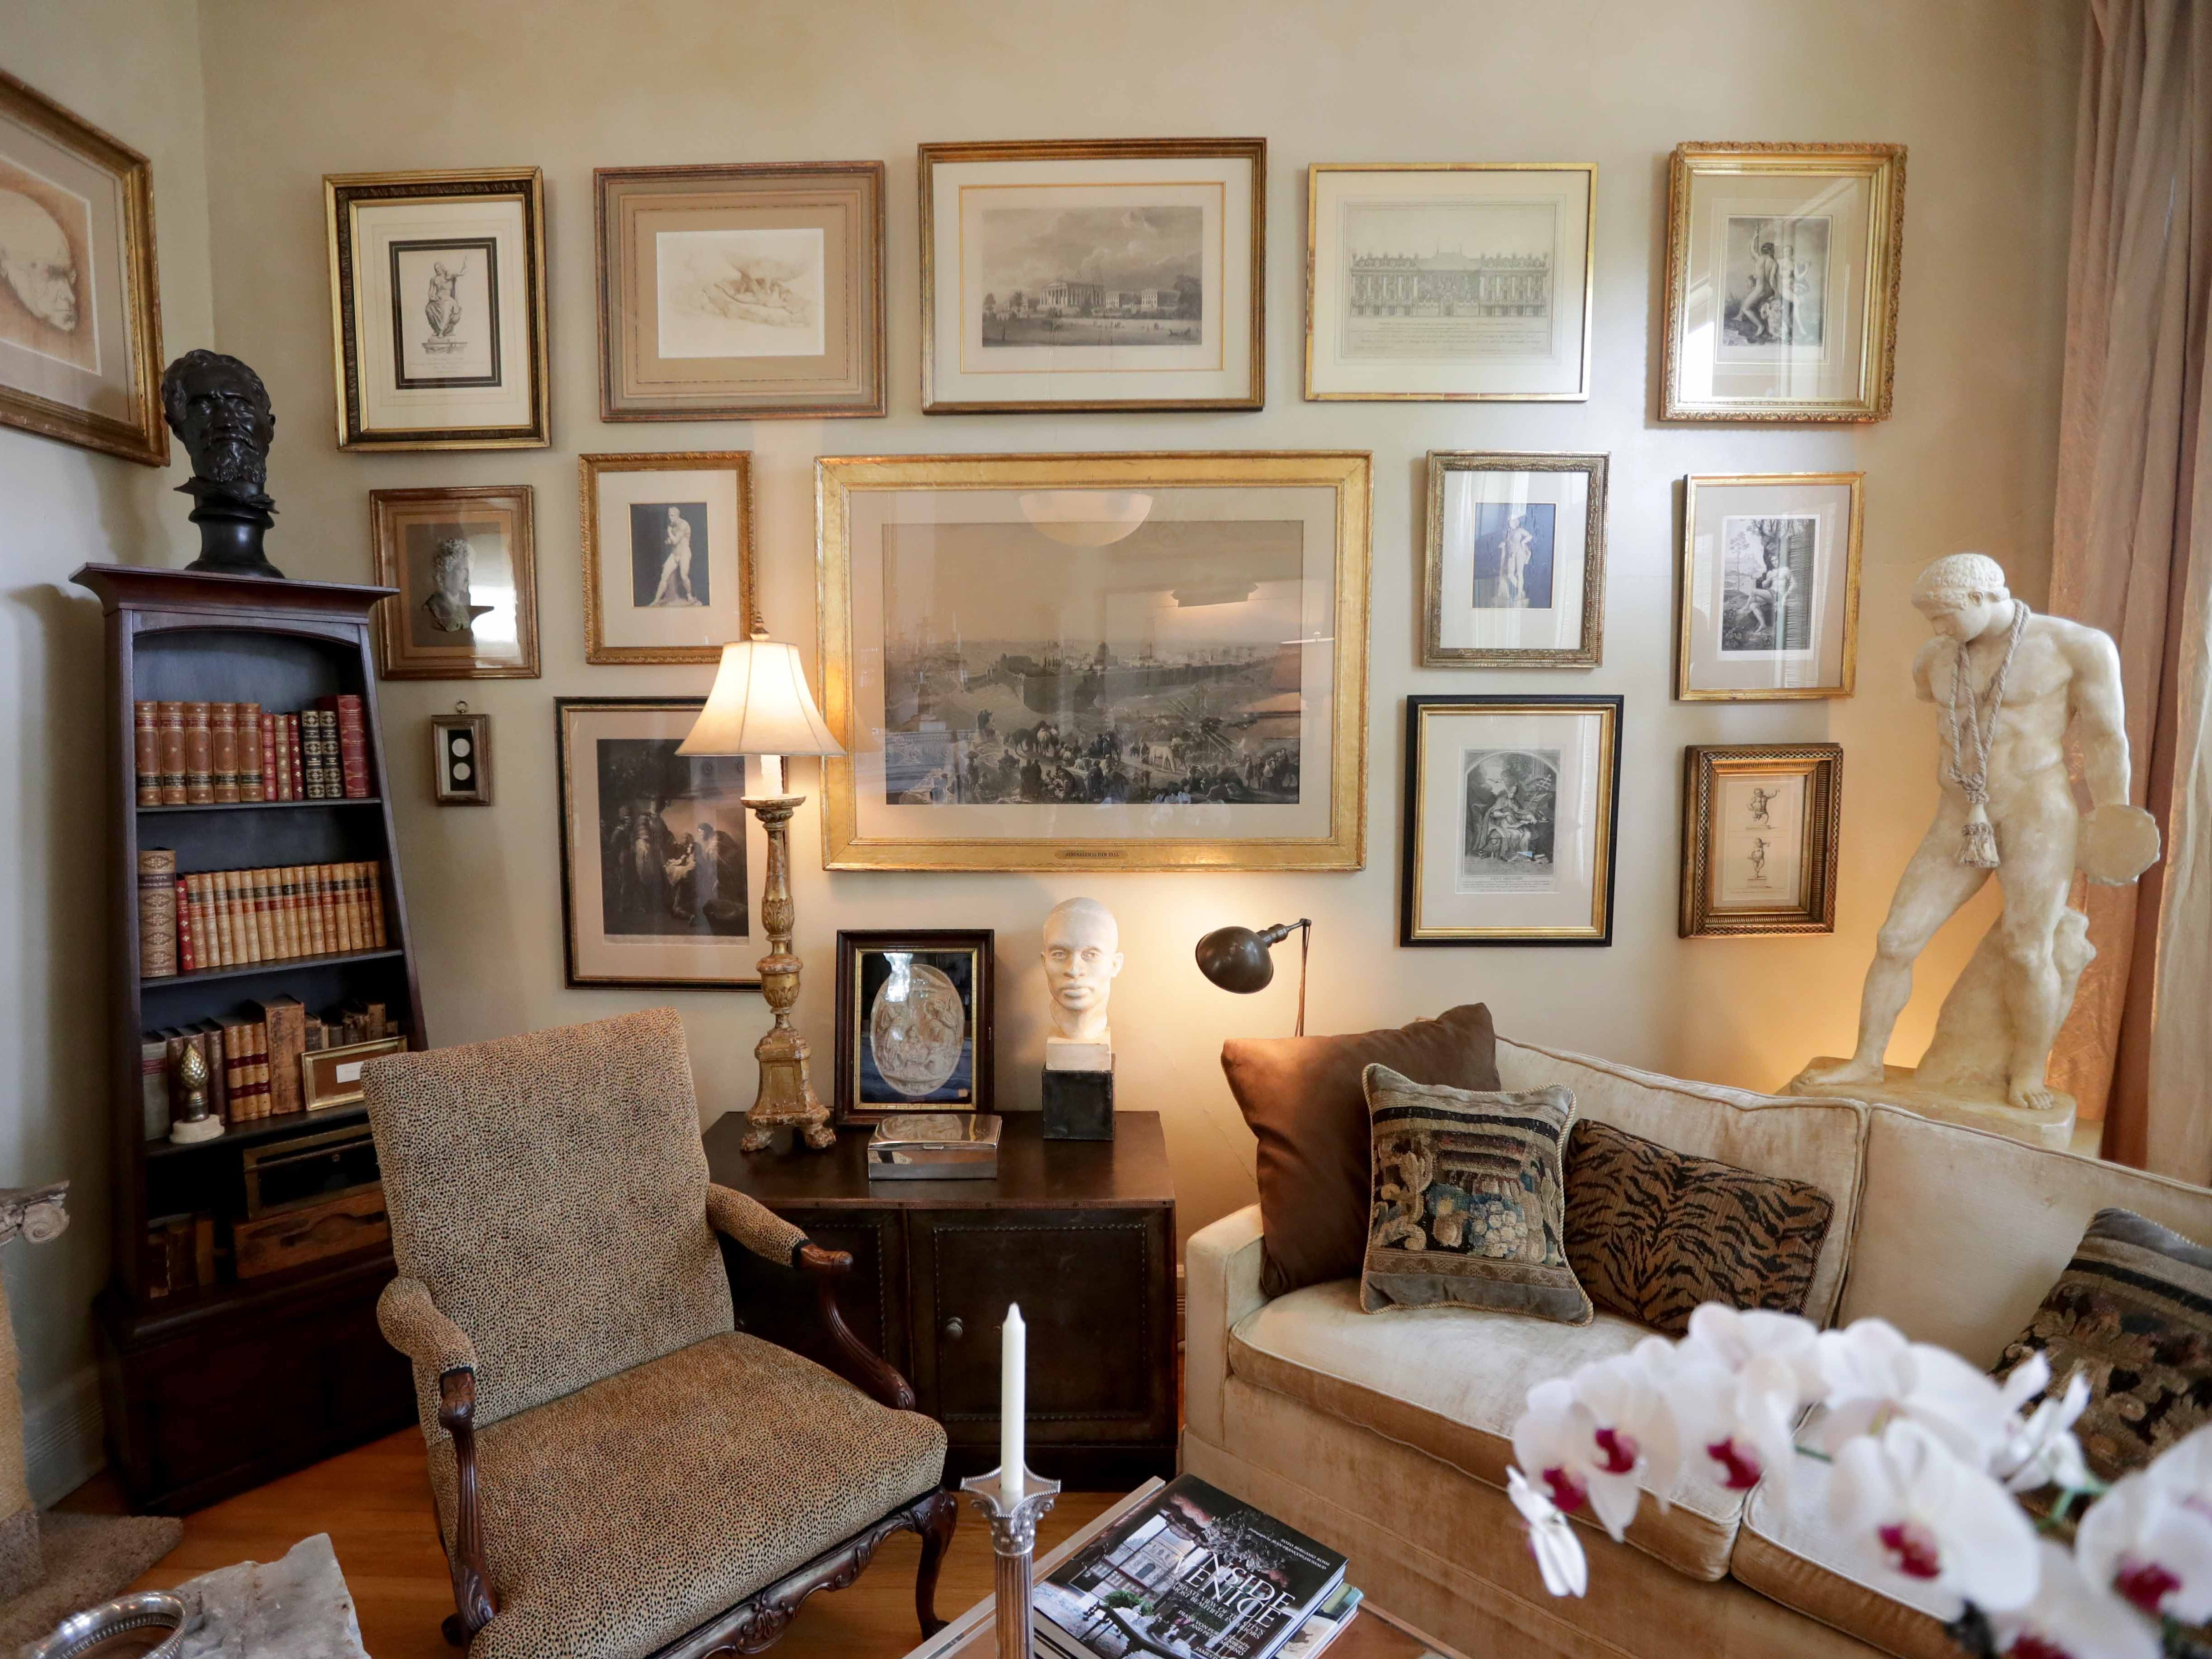 Framed artwork fills this wall in the front parlor. The owner likes to use antique frames.